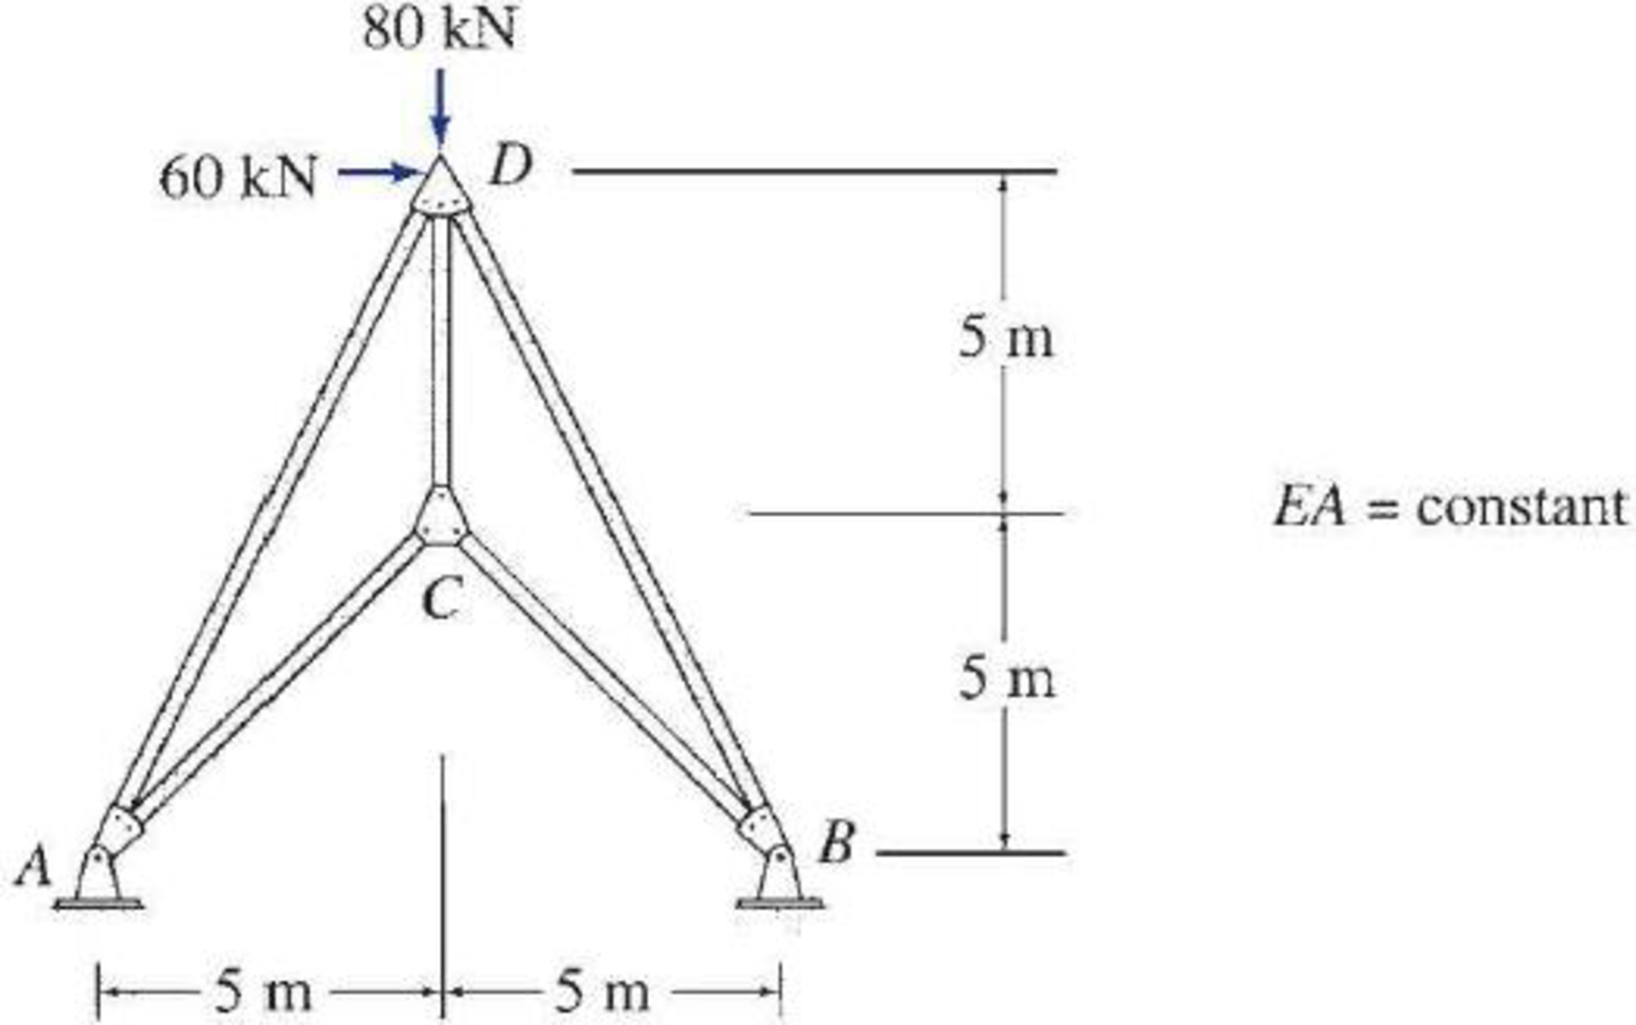 Chapter 13, Problem 29P, 13.26 through 13.29 Determine the reactions and the force in each member of the trusses shown in